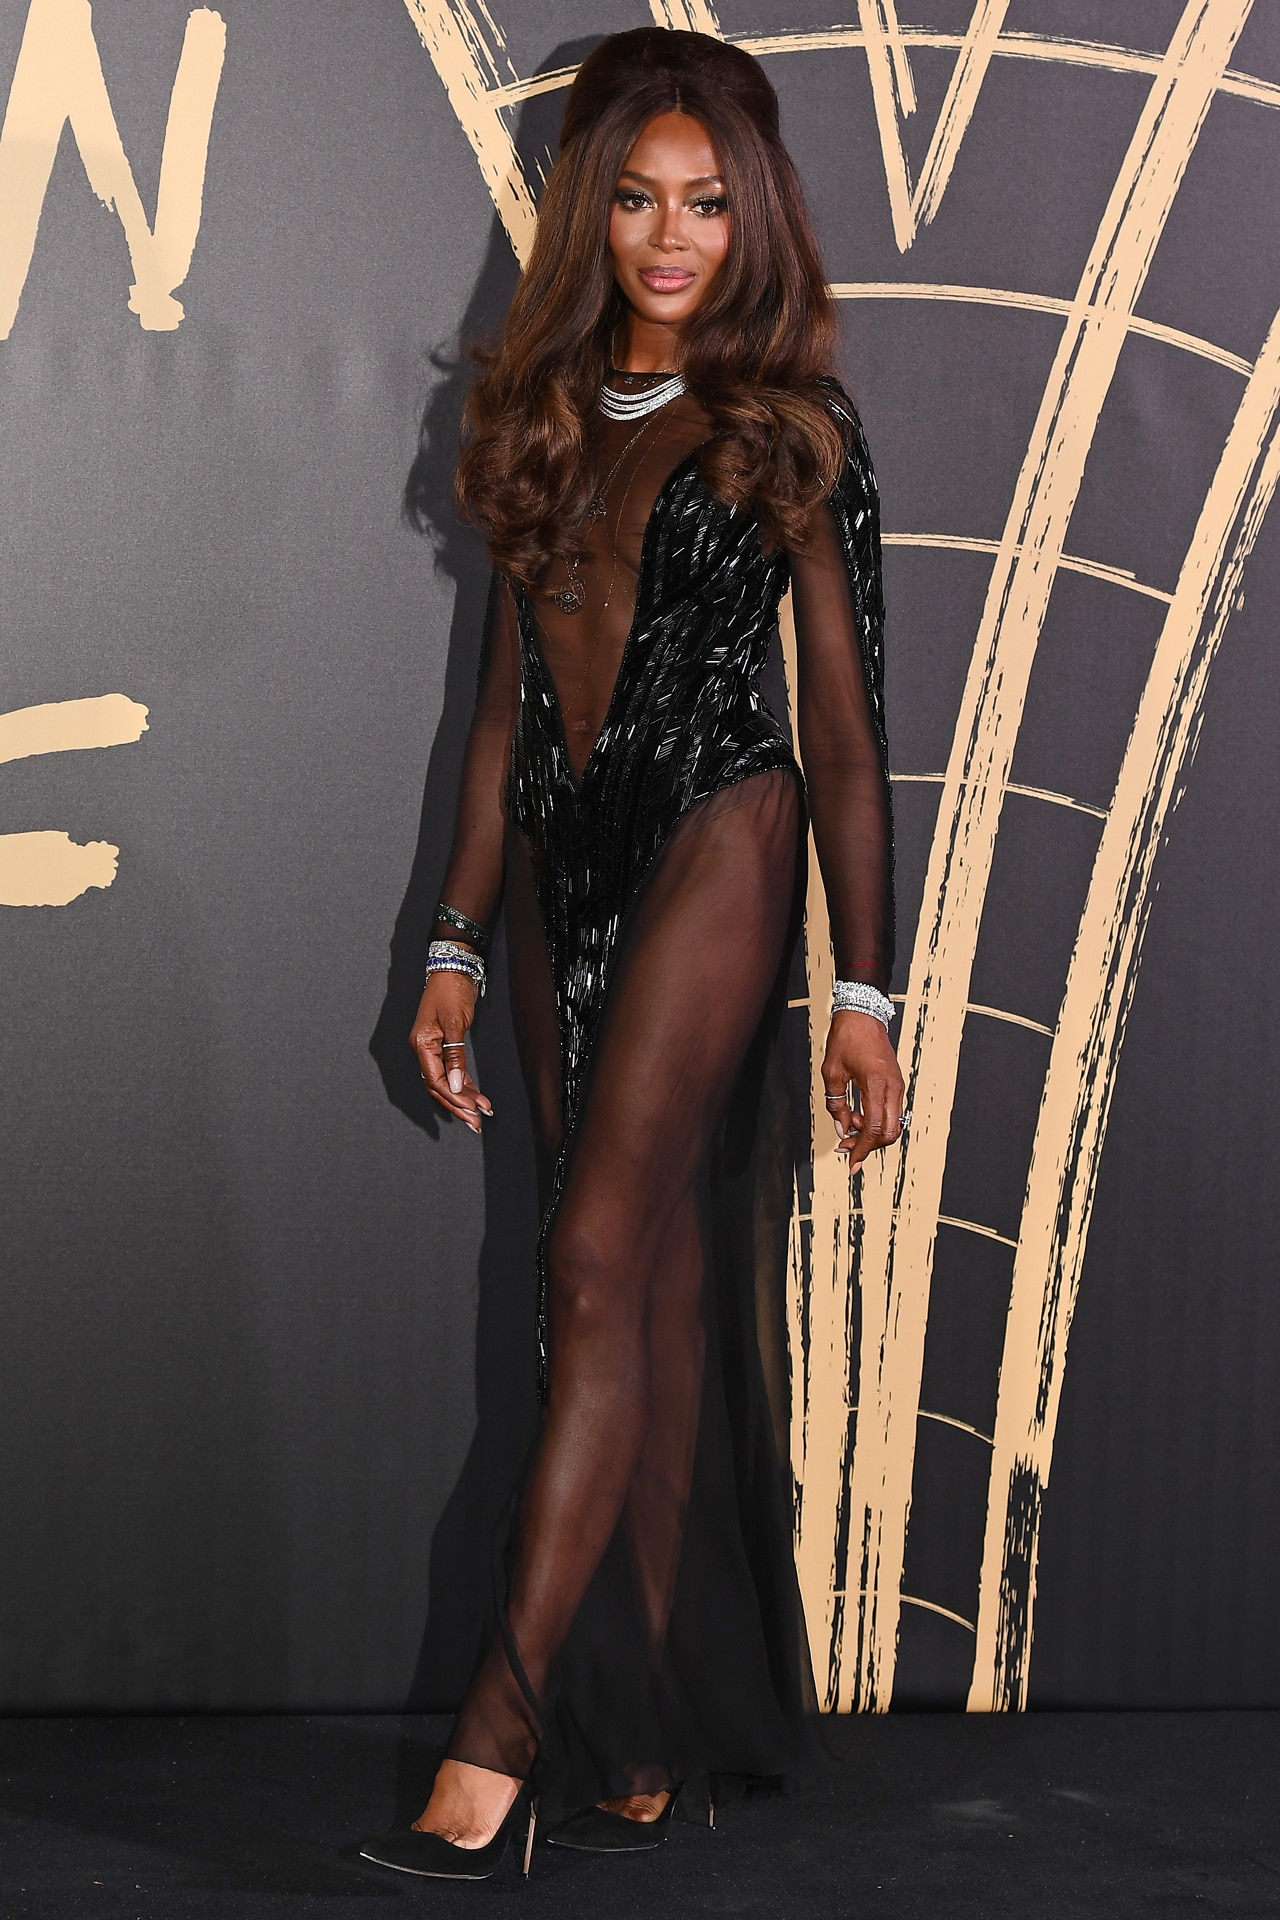 The semi-sheer Thierry Mugler gown Campbell slipped into for the event's red carpet. Image credit: Getty Images